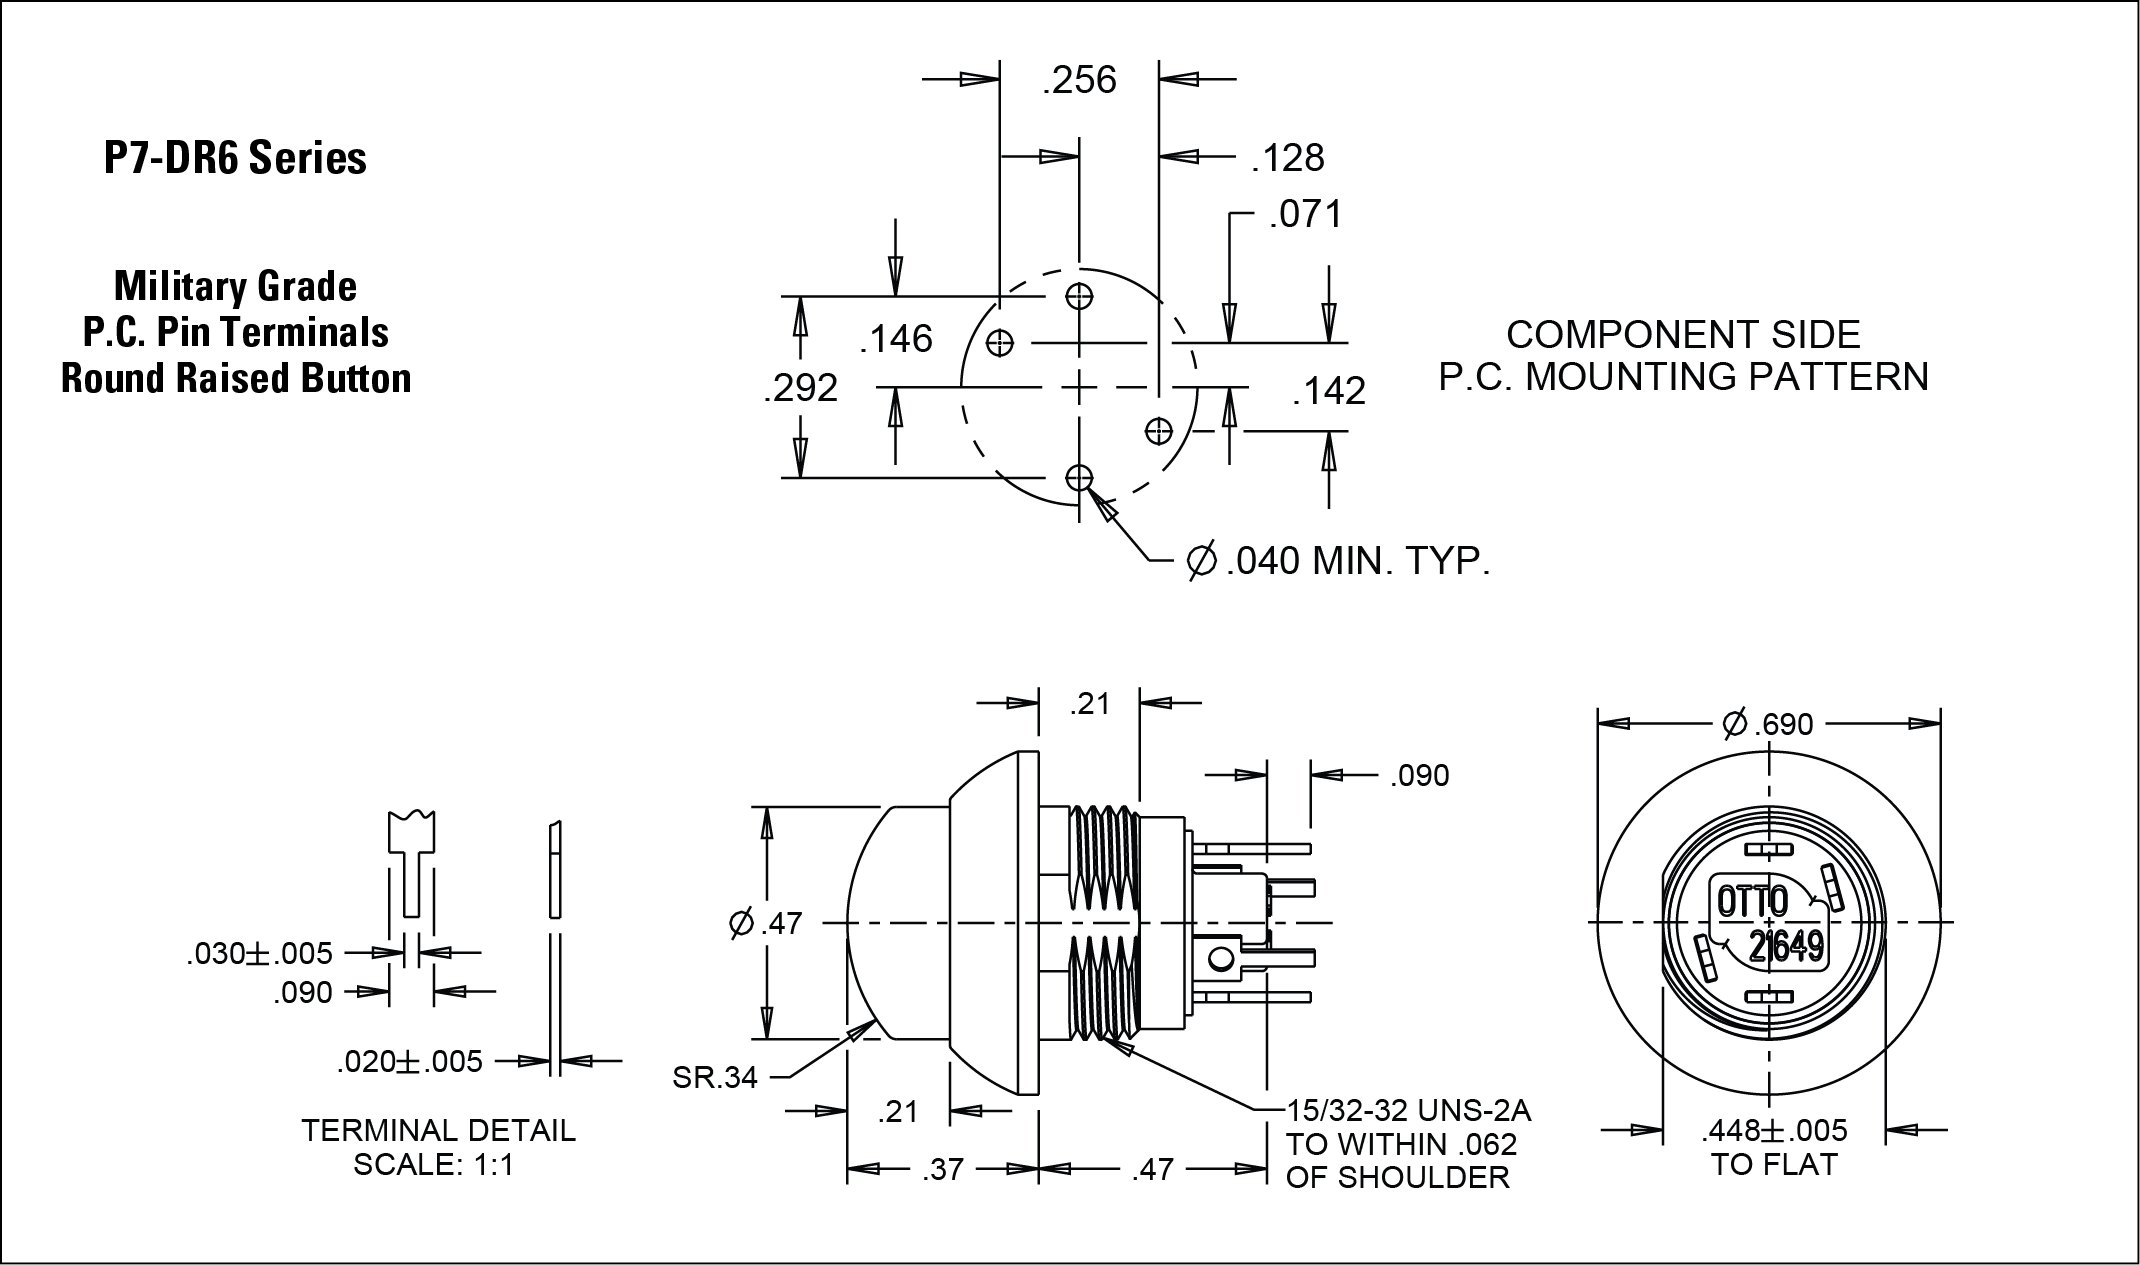 Dome Style Sealed Subminiature Momentary Action Pushbutton Switches 690 Double Light Switch Wiring Diagram This Quality Precision Snap Is Designed For Use In Instrument Panels Grips Computers Heavy Equipment And Other Applications Where